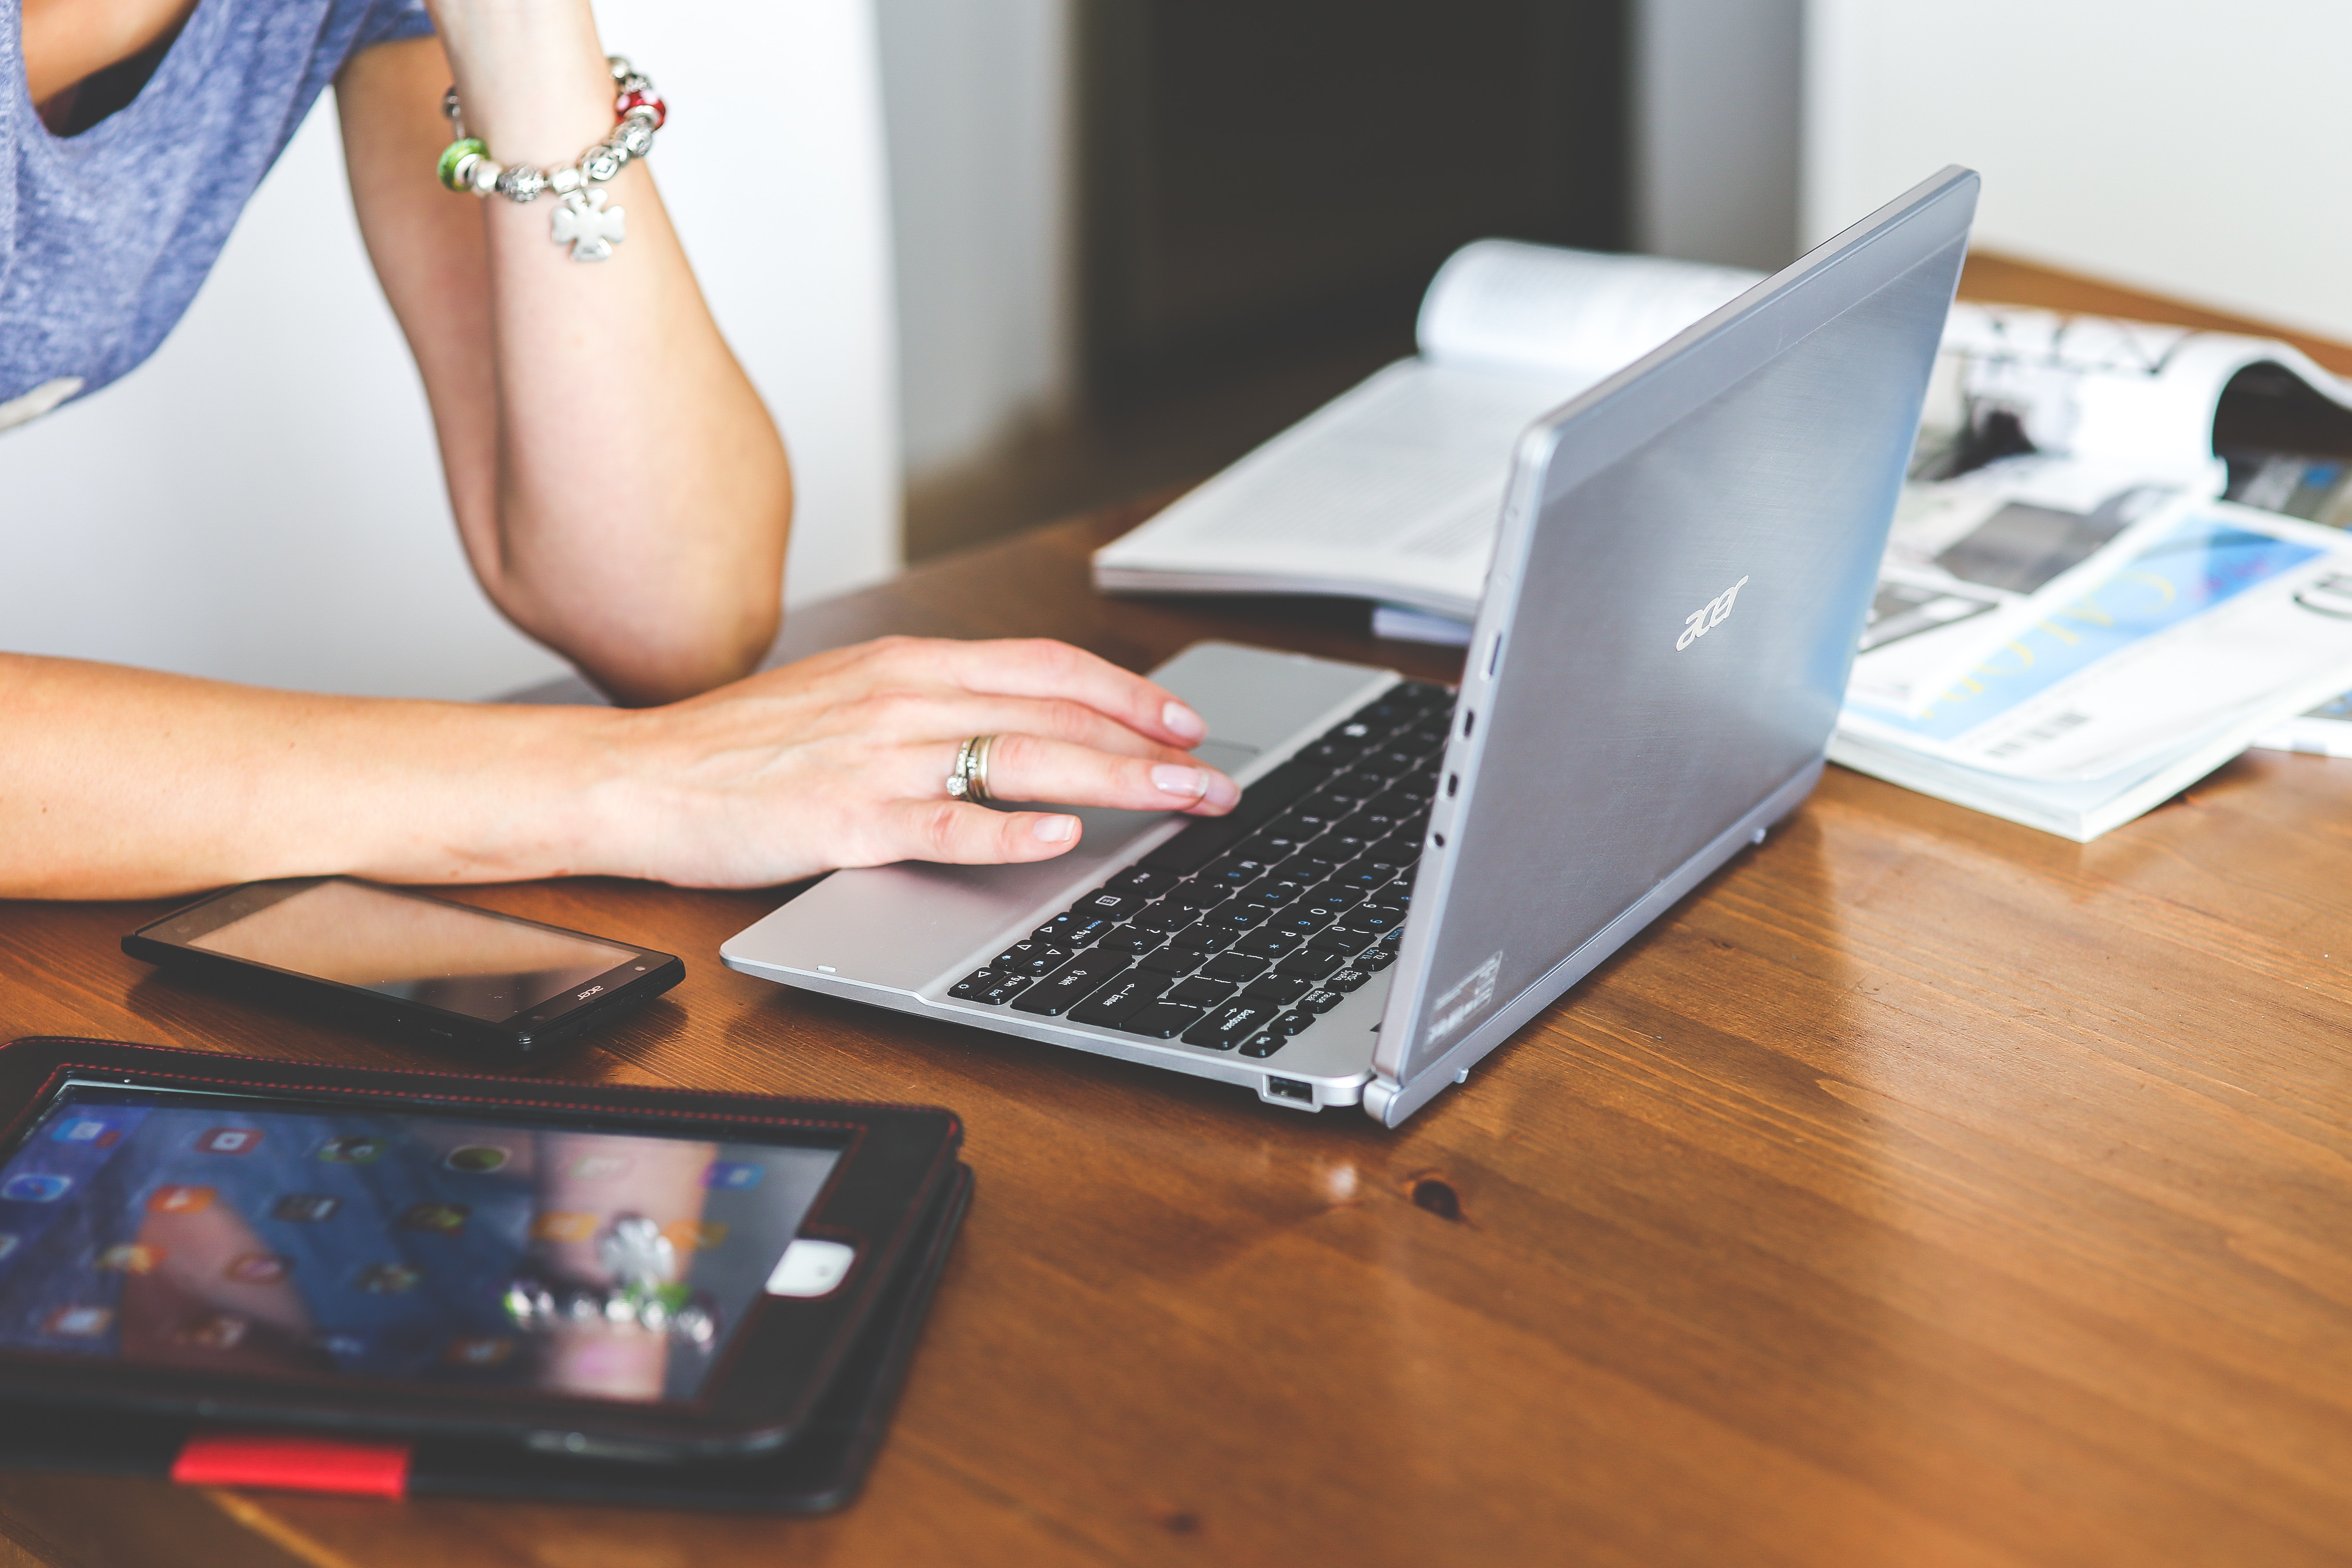 Close-up of woman typing on keyboard of laptop photo